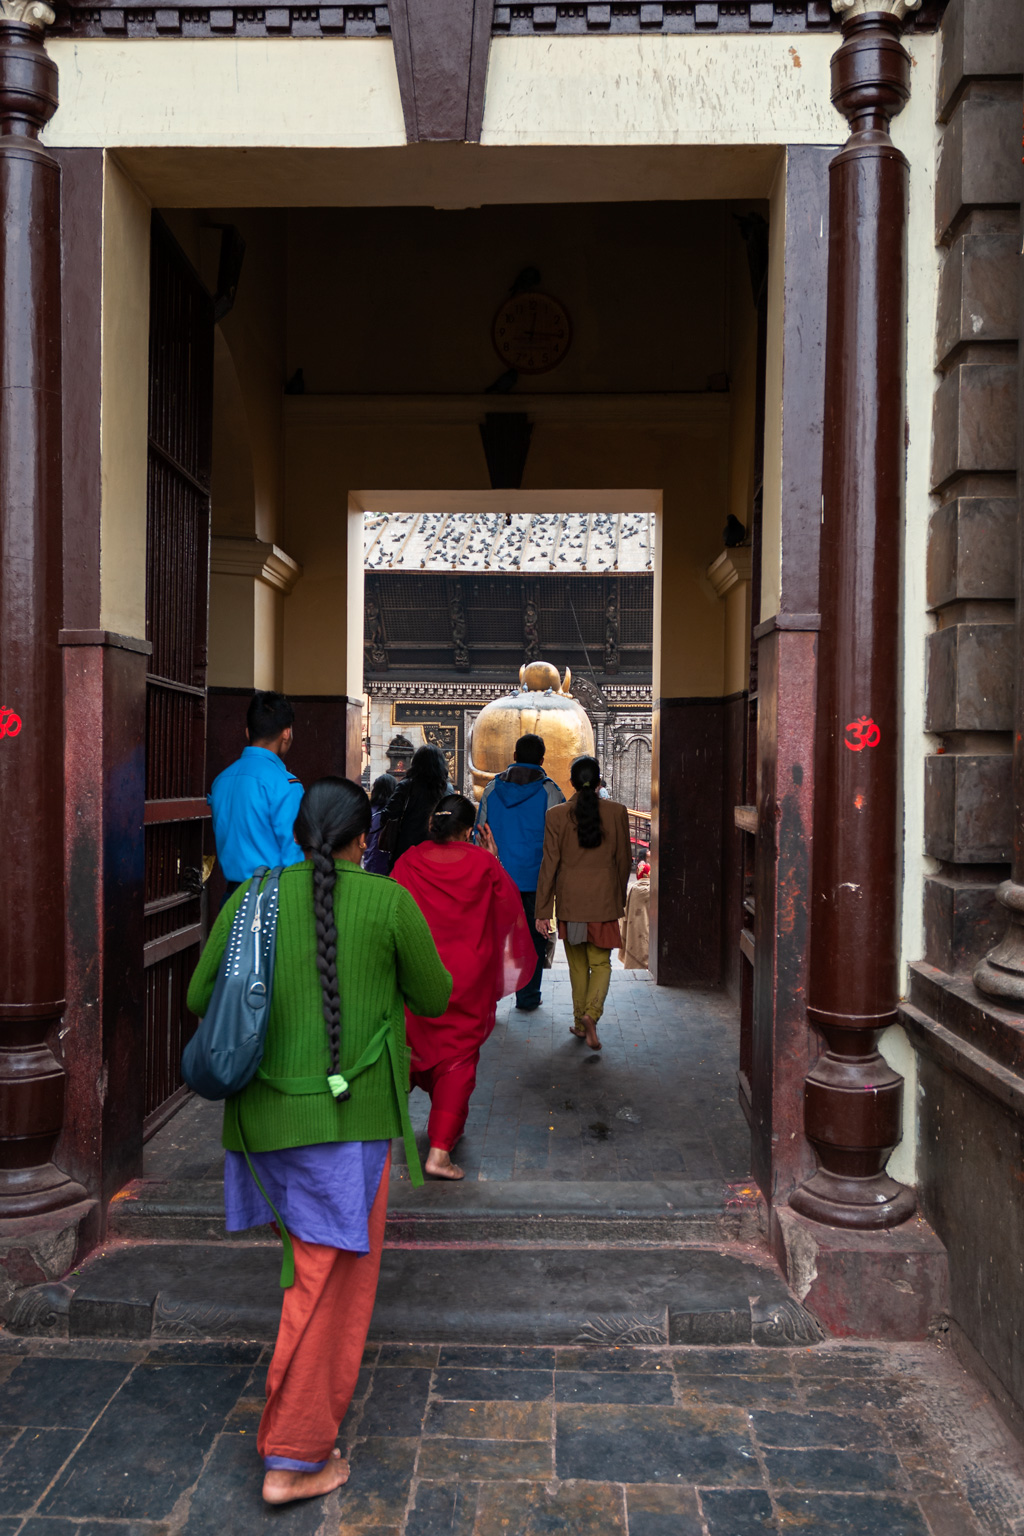 Nepali people enter the Pashupatinath Temple. Kathmandu, Nepal.